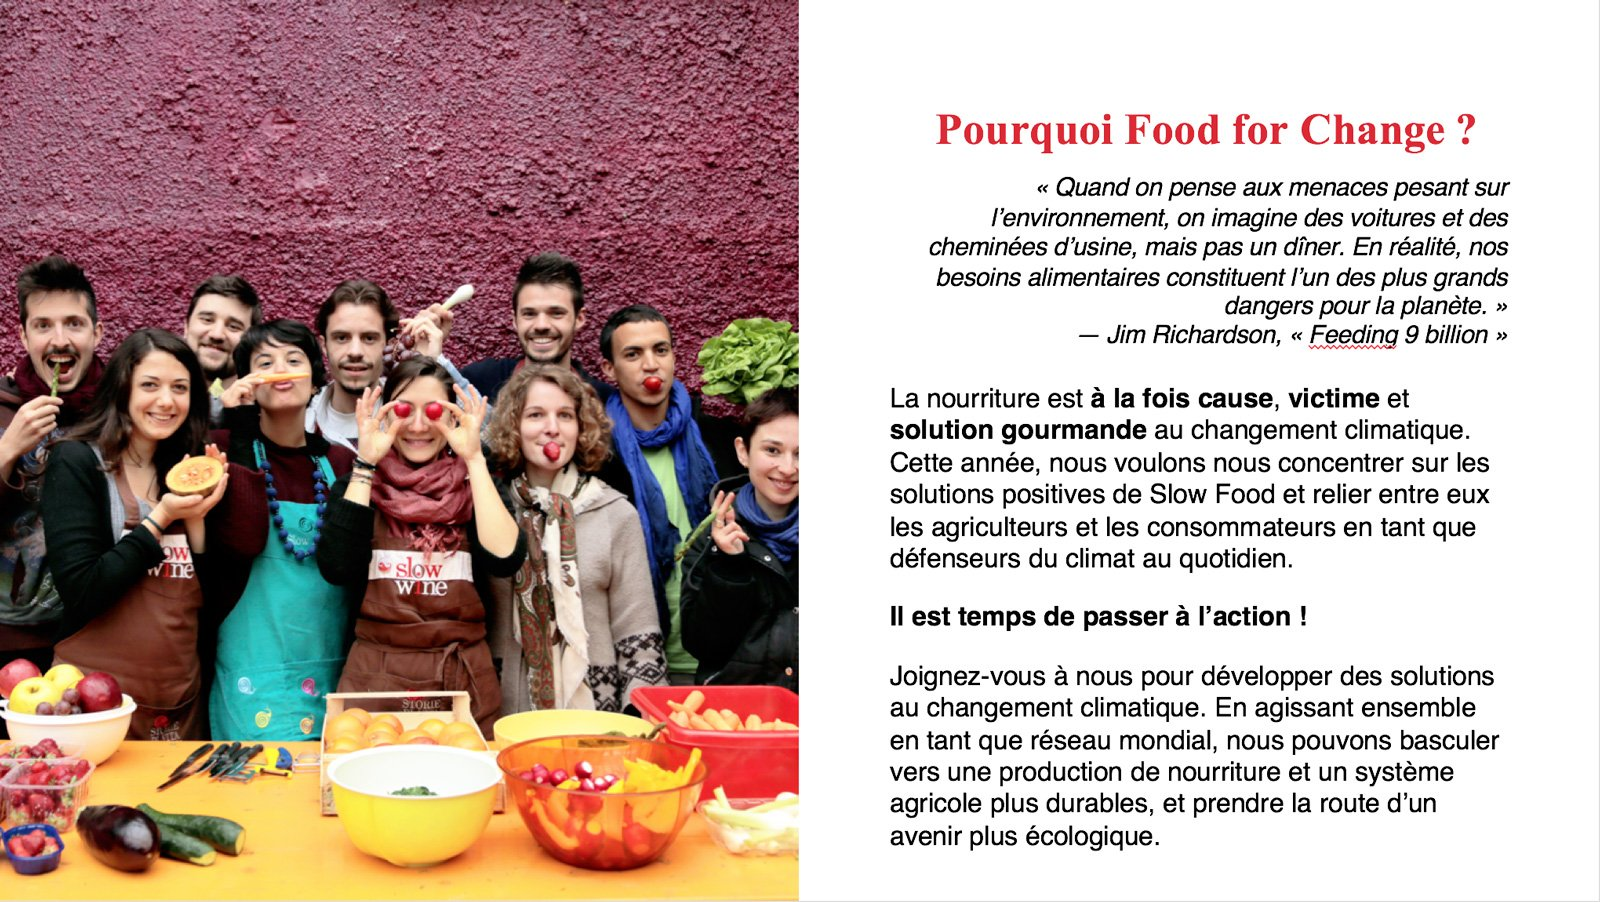 slowfood-campagne-slow-food-climat-alimentation-food-for-change-synthese-2-1600x902